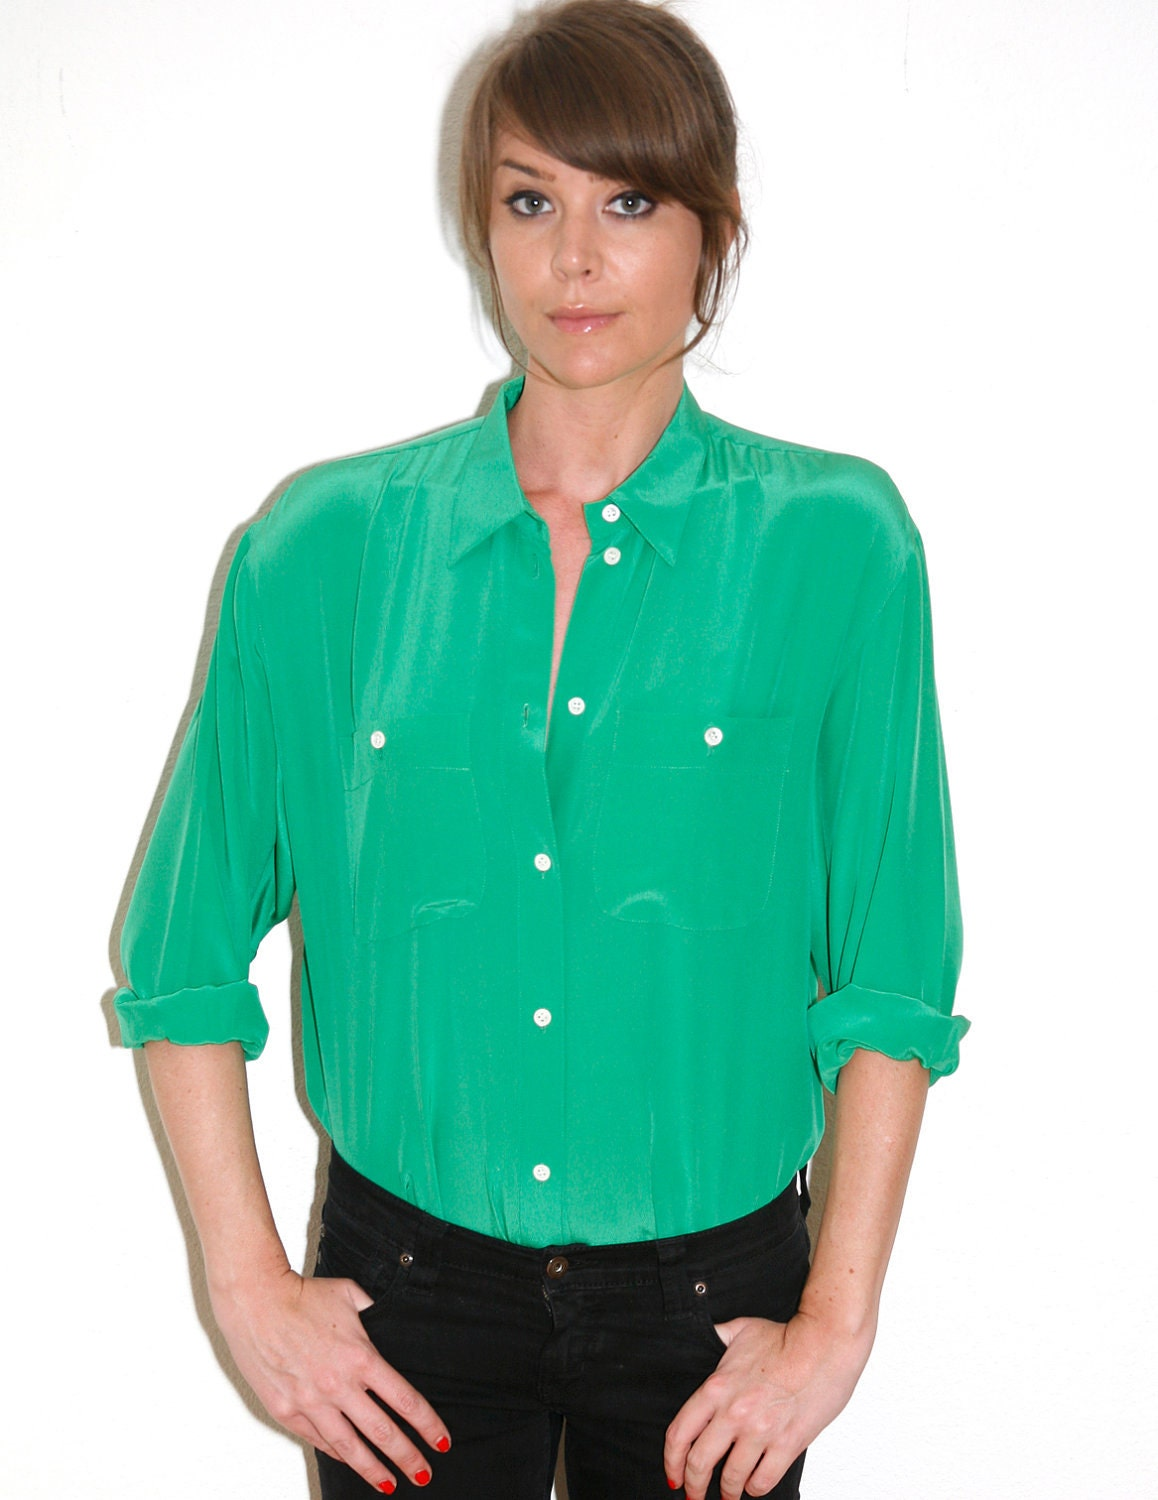 matches. ($ - $) Find great deals on the latest styles of Bright green blouse. Compare prices & save money on Women's Shirts & Blouses.